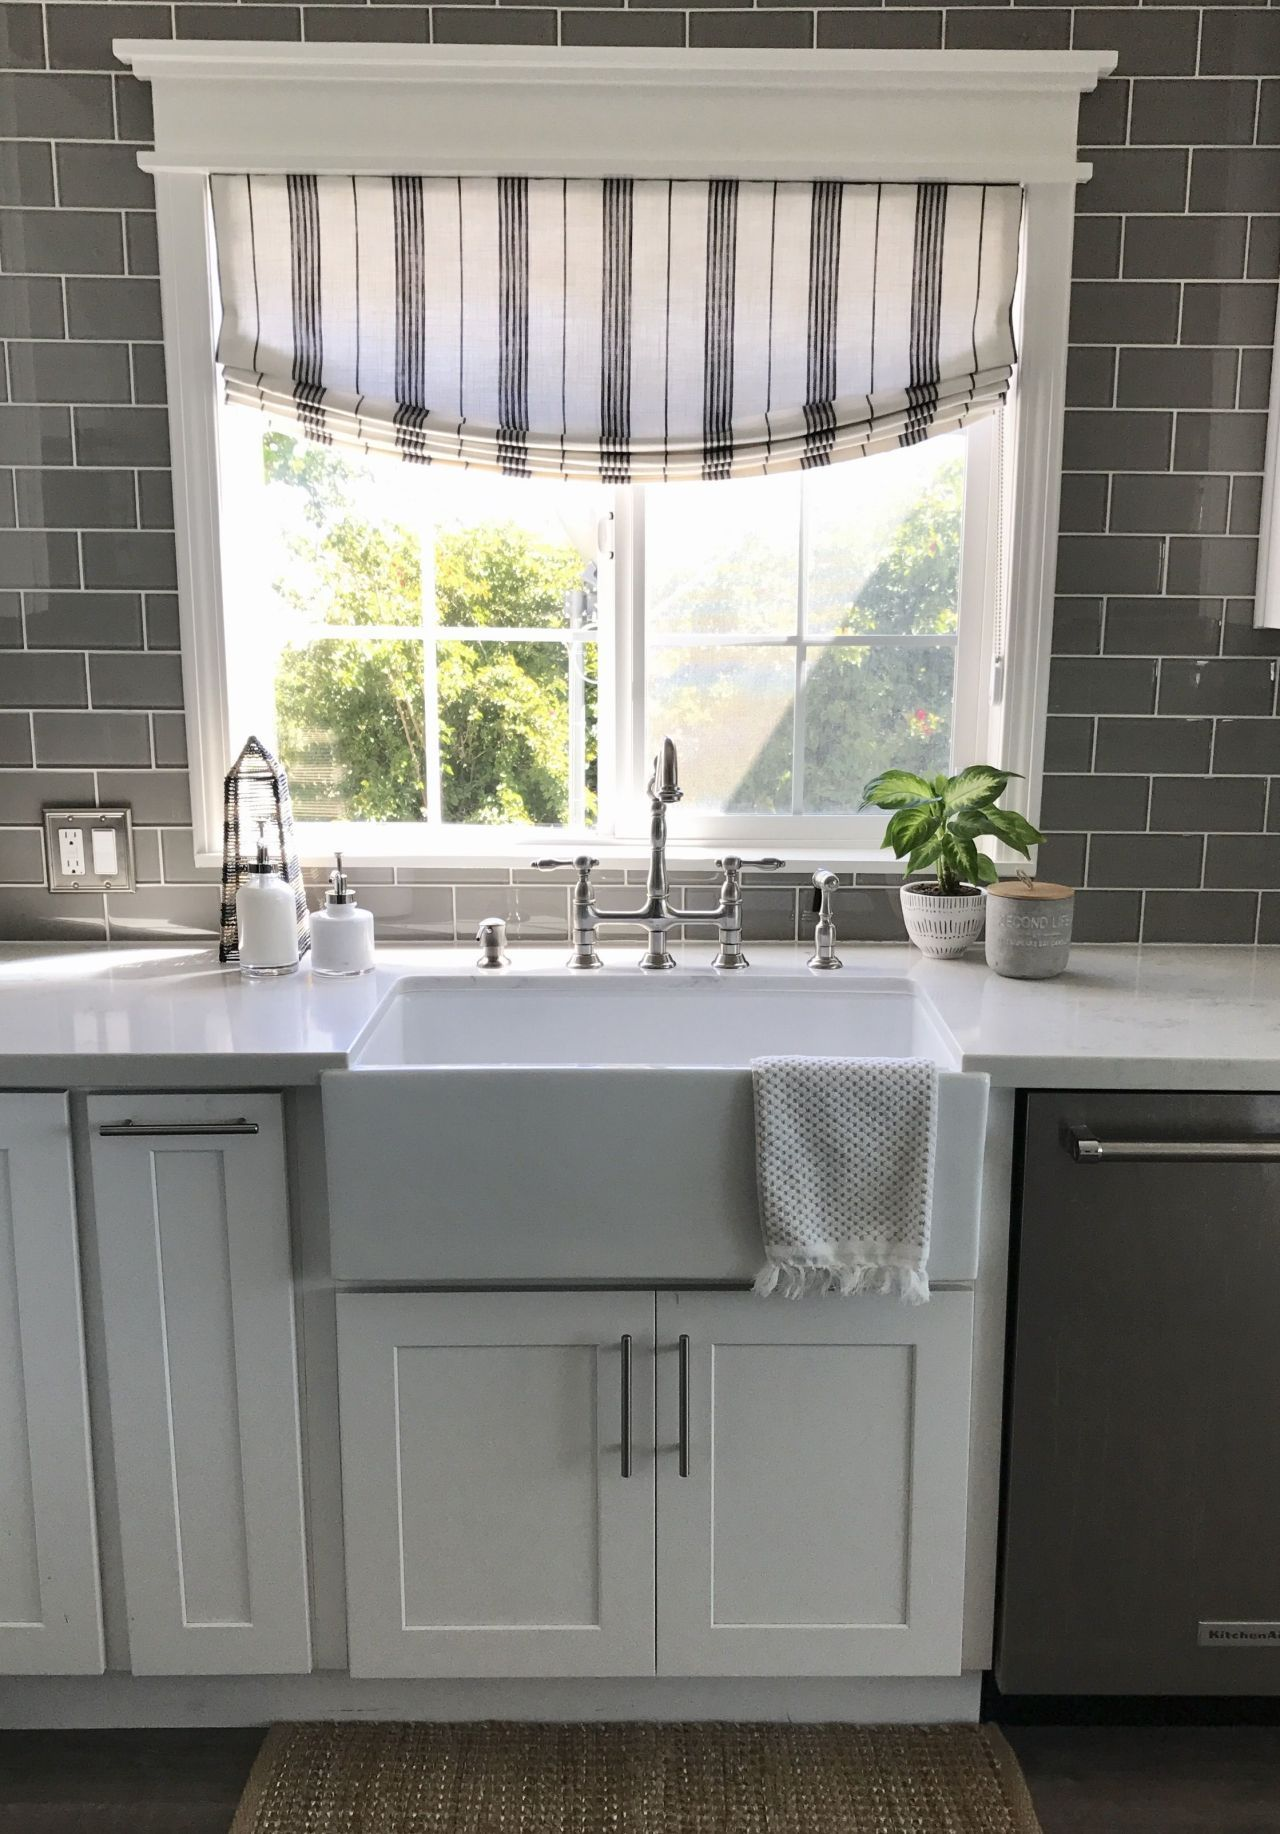 most popular grey and white kitchen curtains ideas 36 white kitchen curtains farmhouse on farmhouse kitchen curtains id=87991